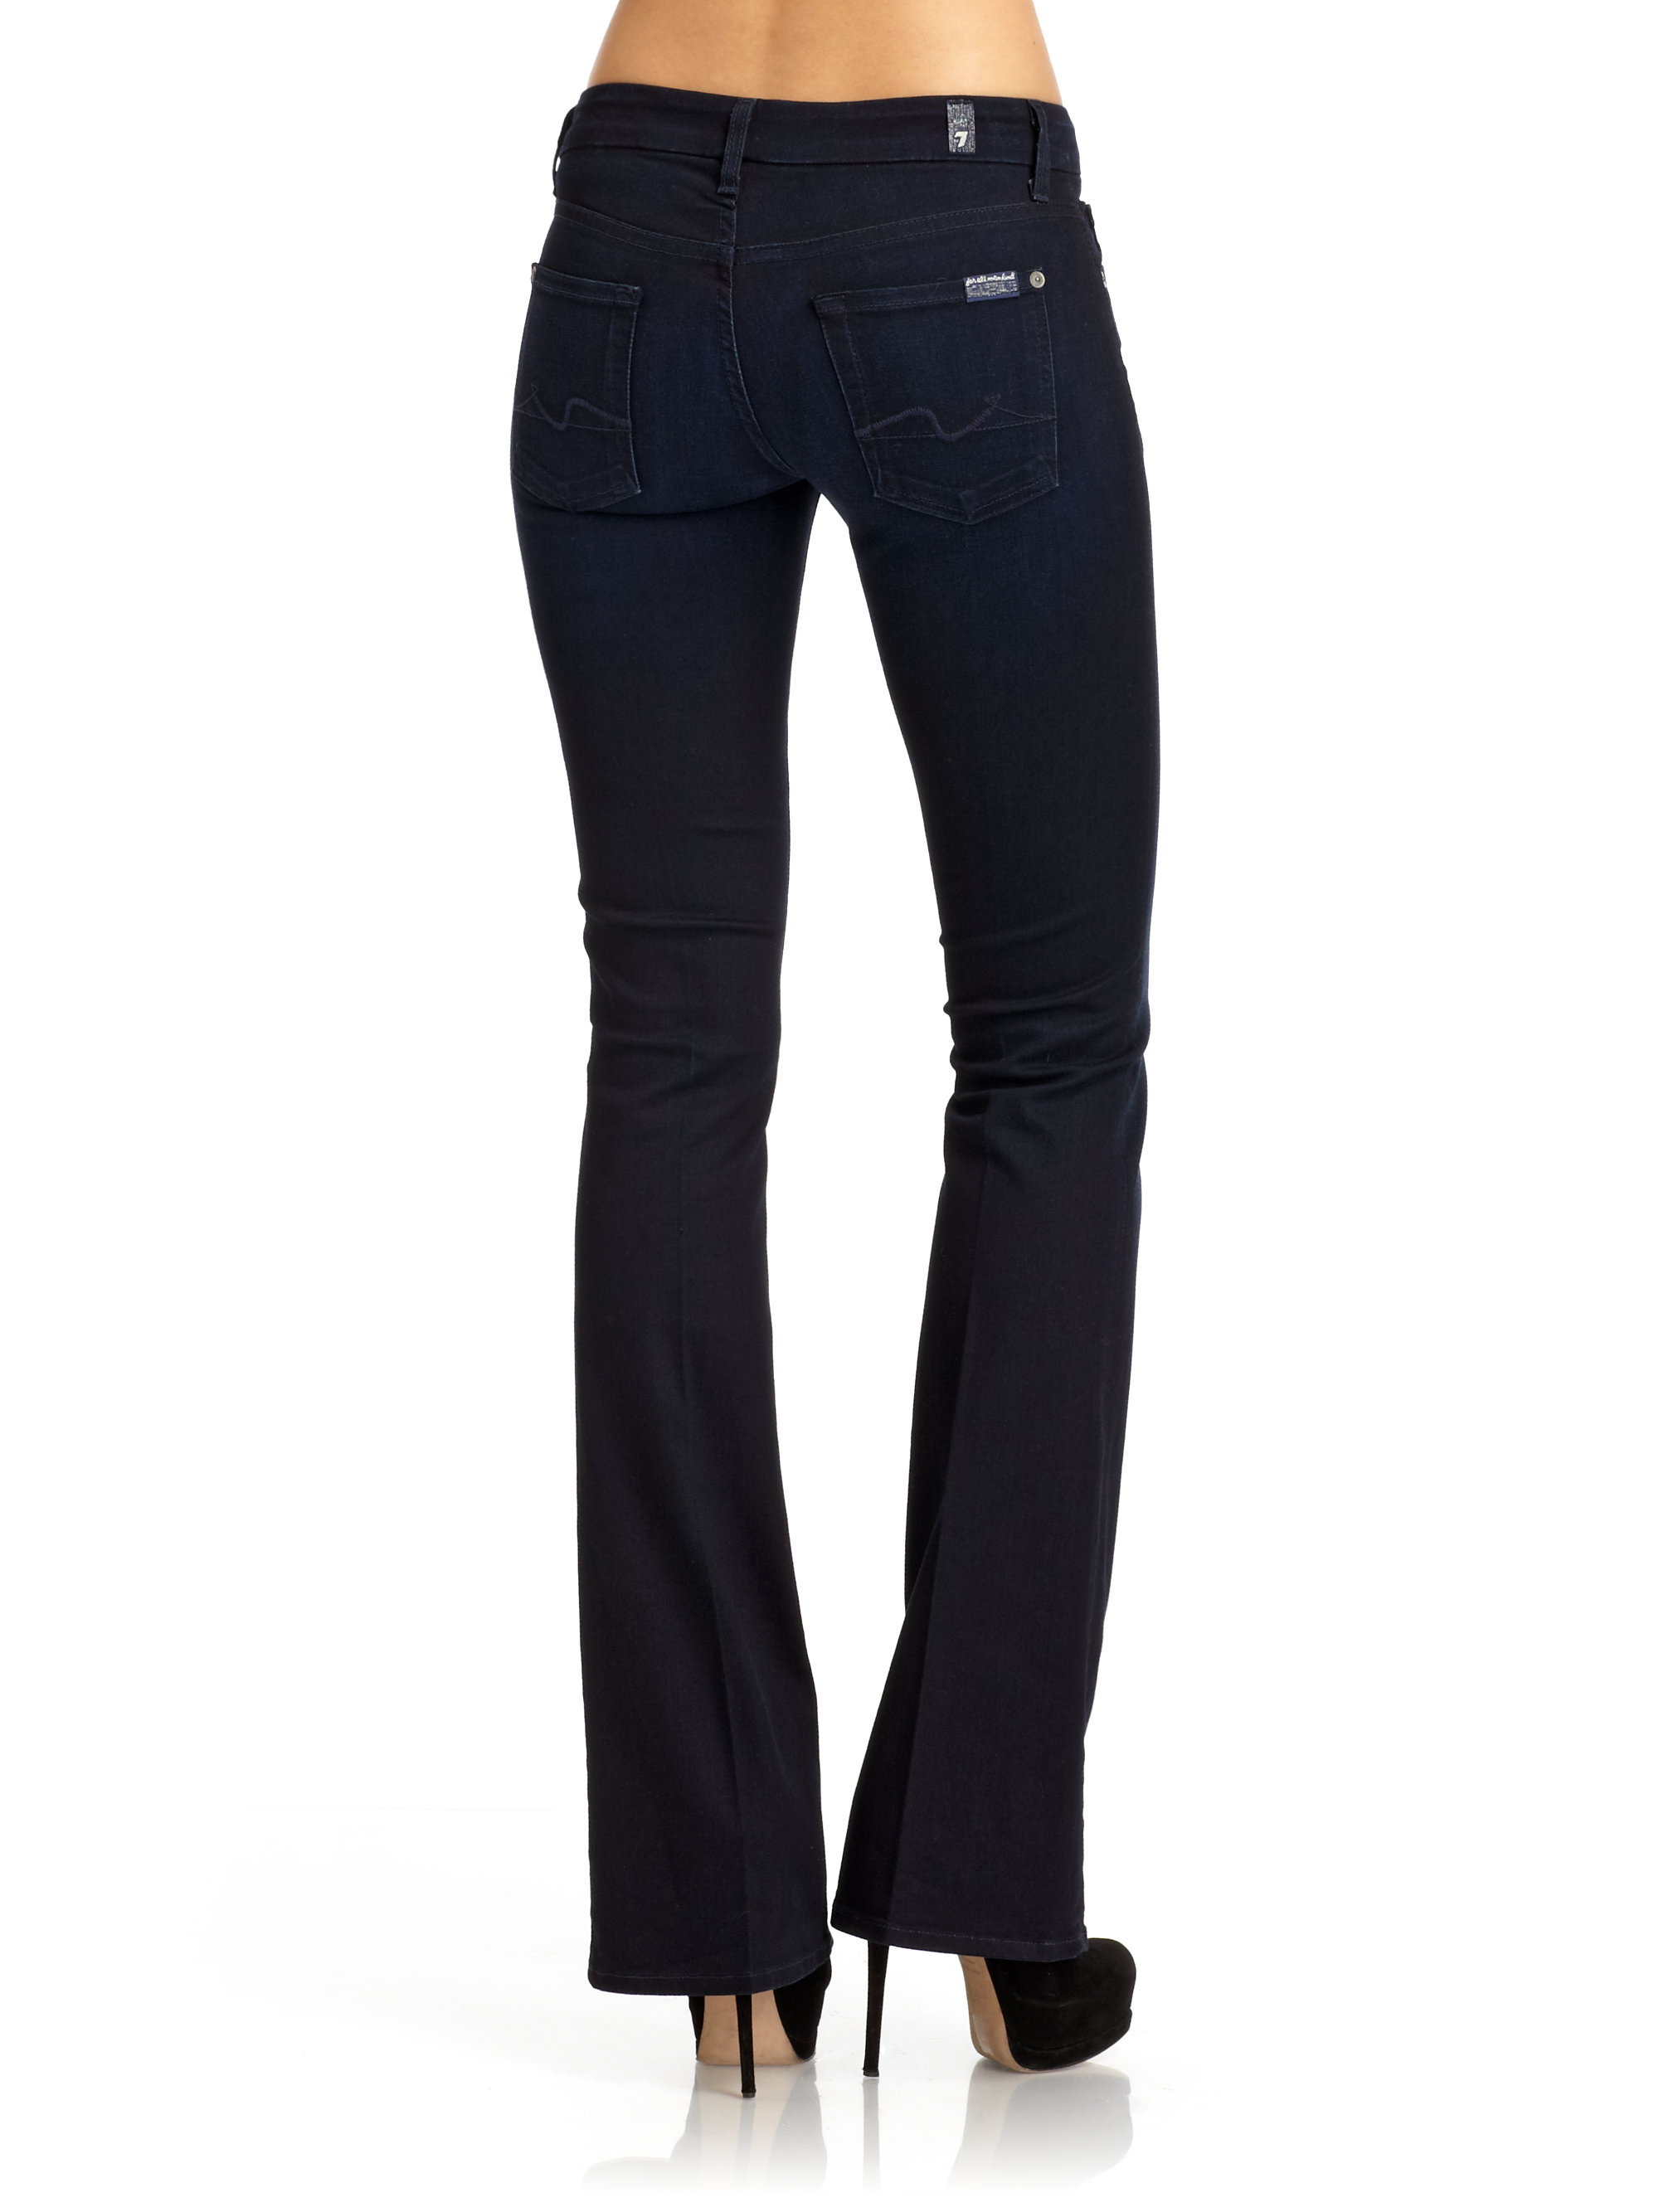 7 for all mankind Kimmie Bootcut Jeans in Blue | Lyst